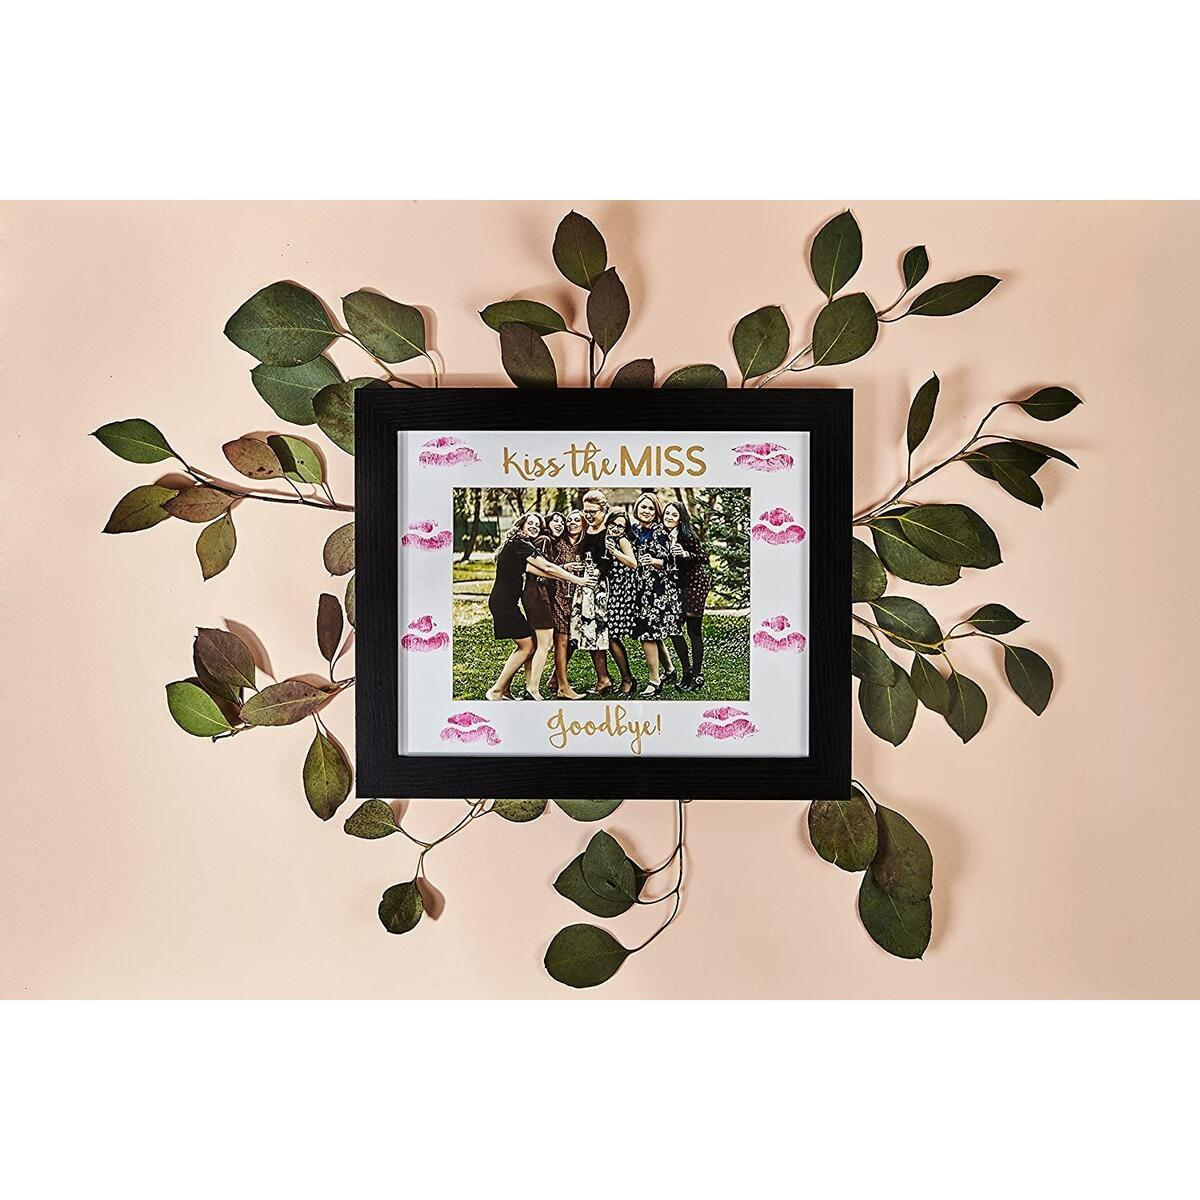 Bachelorette Gift for The Bride - Picture Frame - Kiss The Miss Goodbye, Fits 5x7 Photo